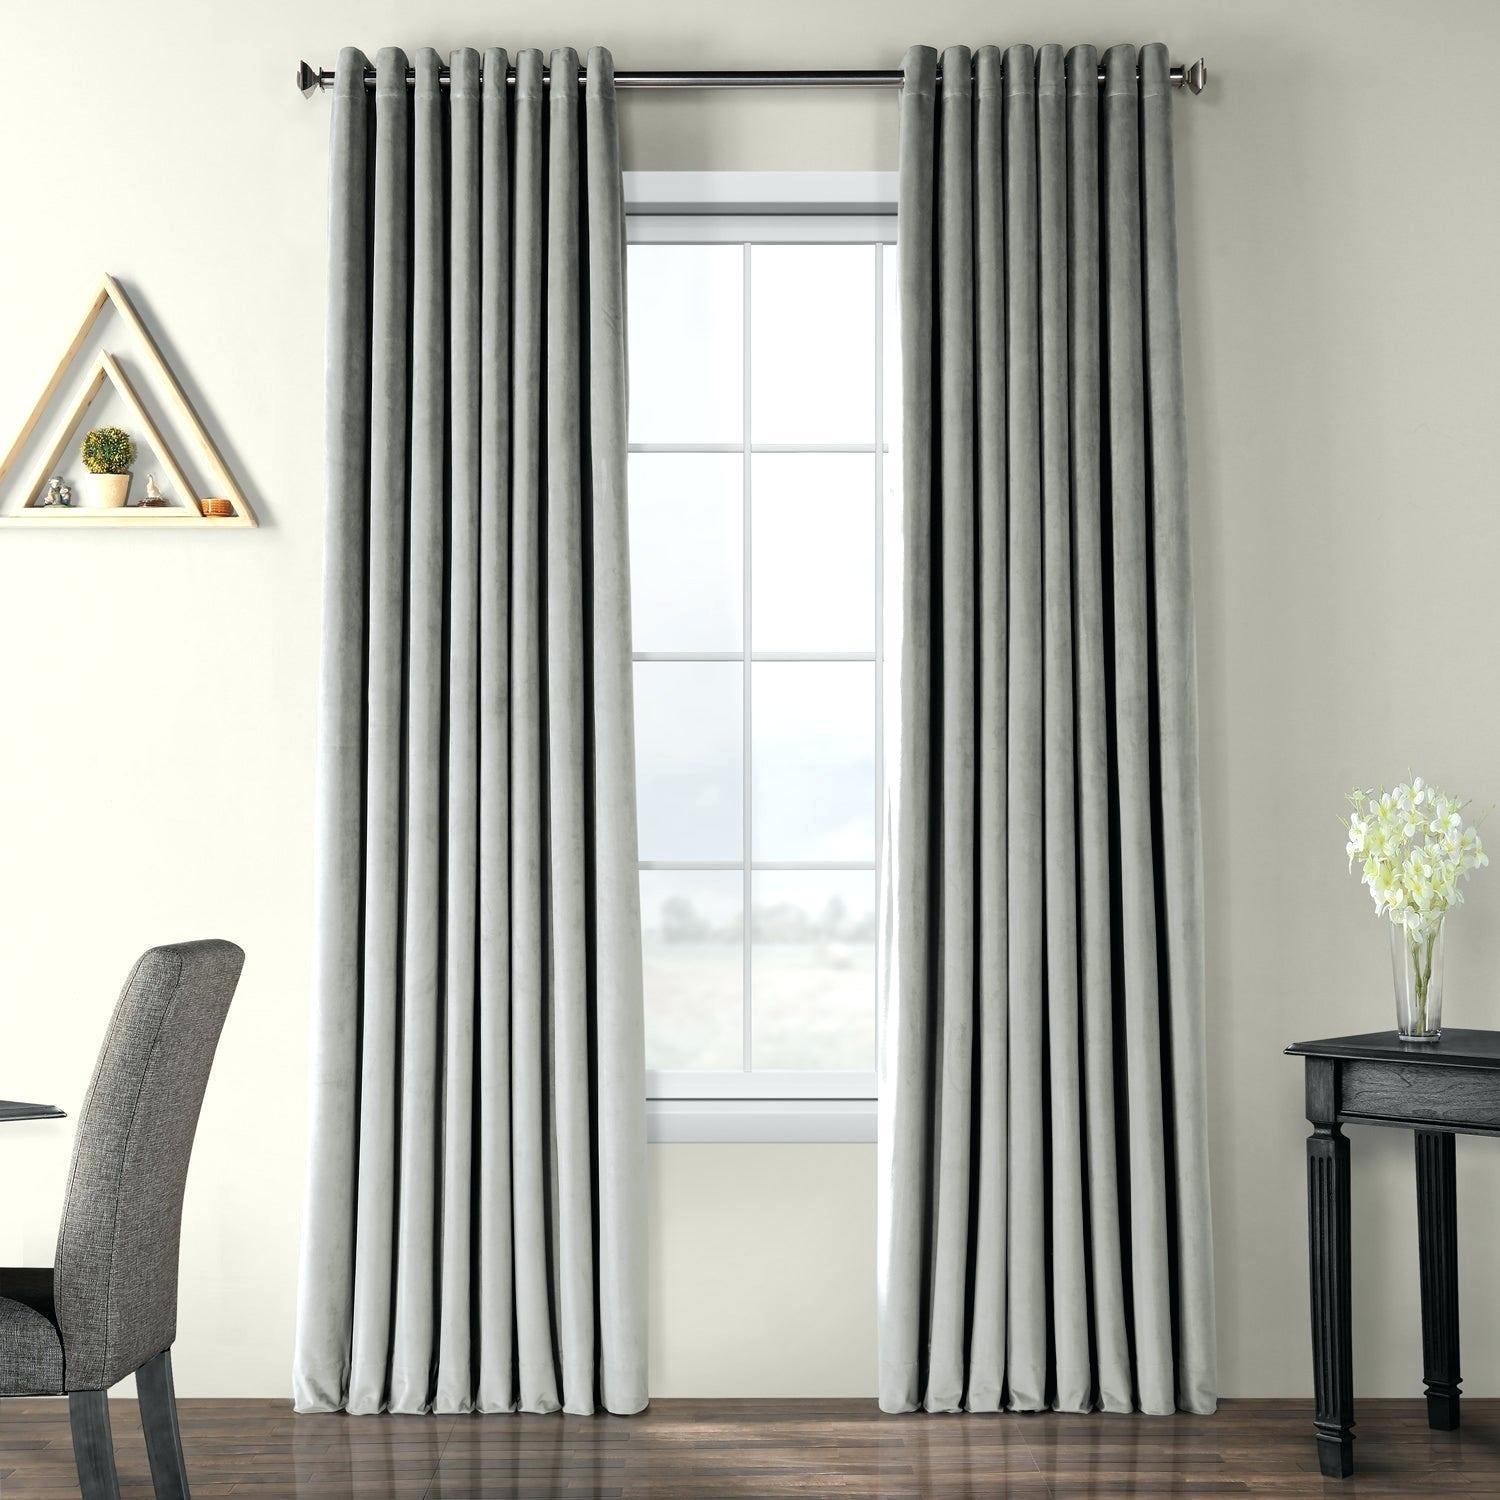 Overstock Blackout Curtains – Waterstewards With Solid Cotton True Blackout Curtain Panels (View 18 of 30)